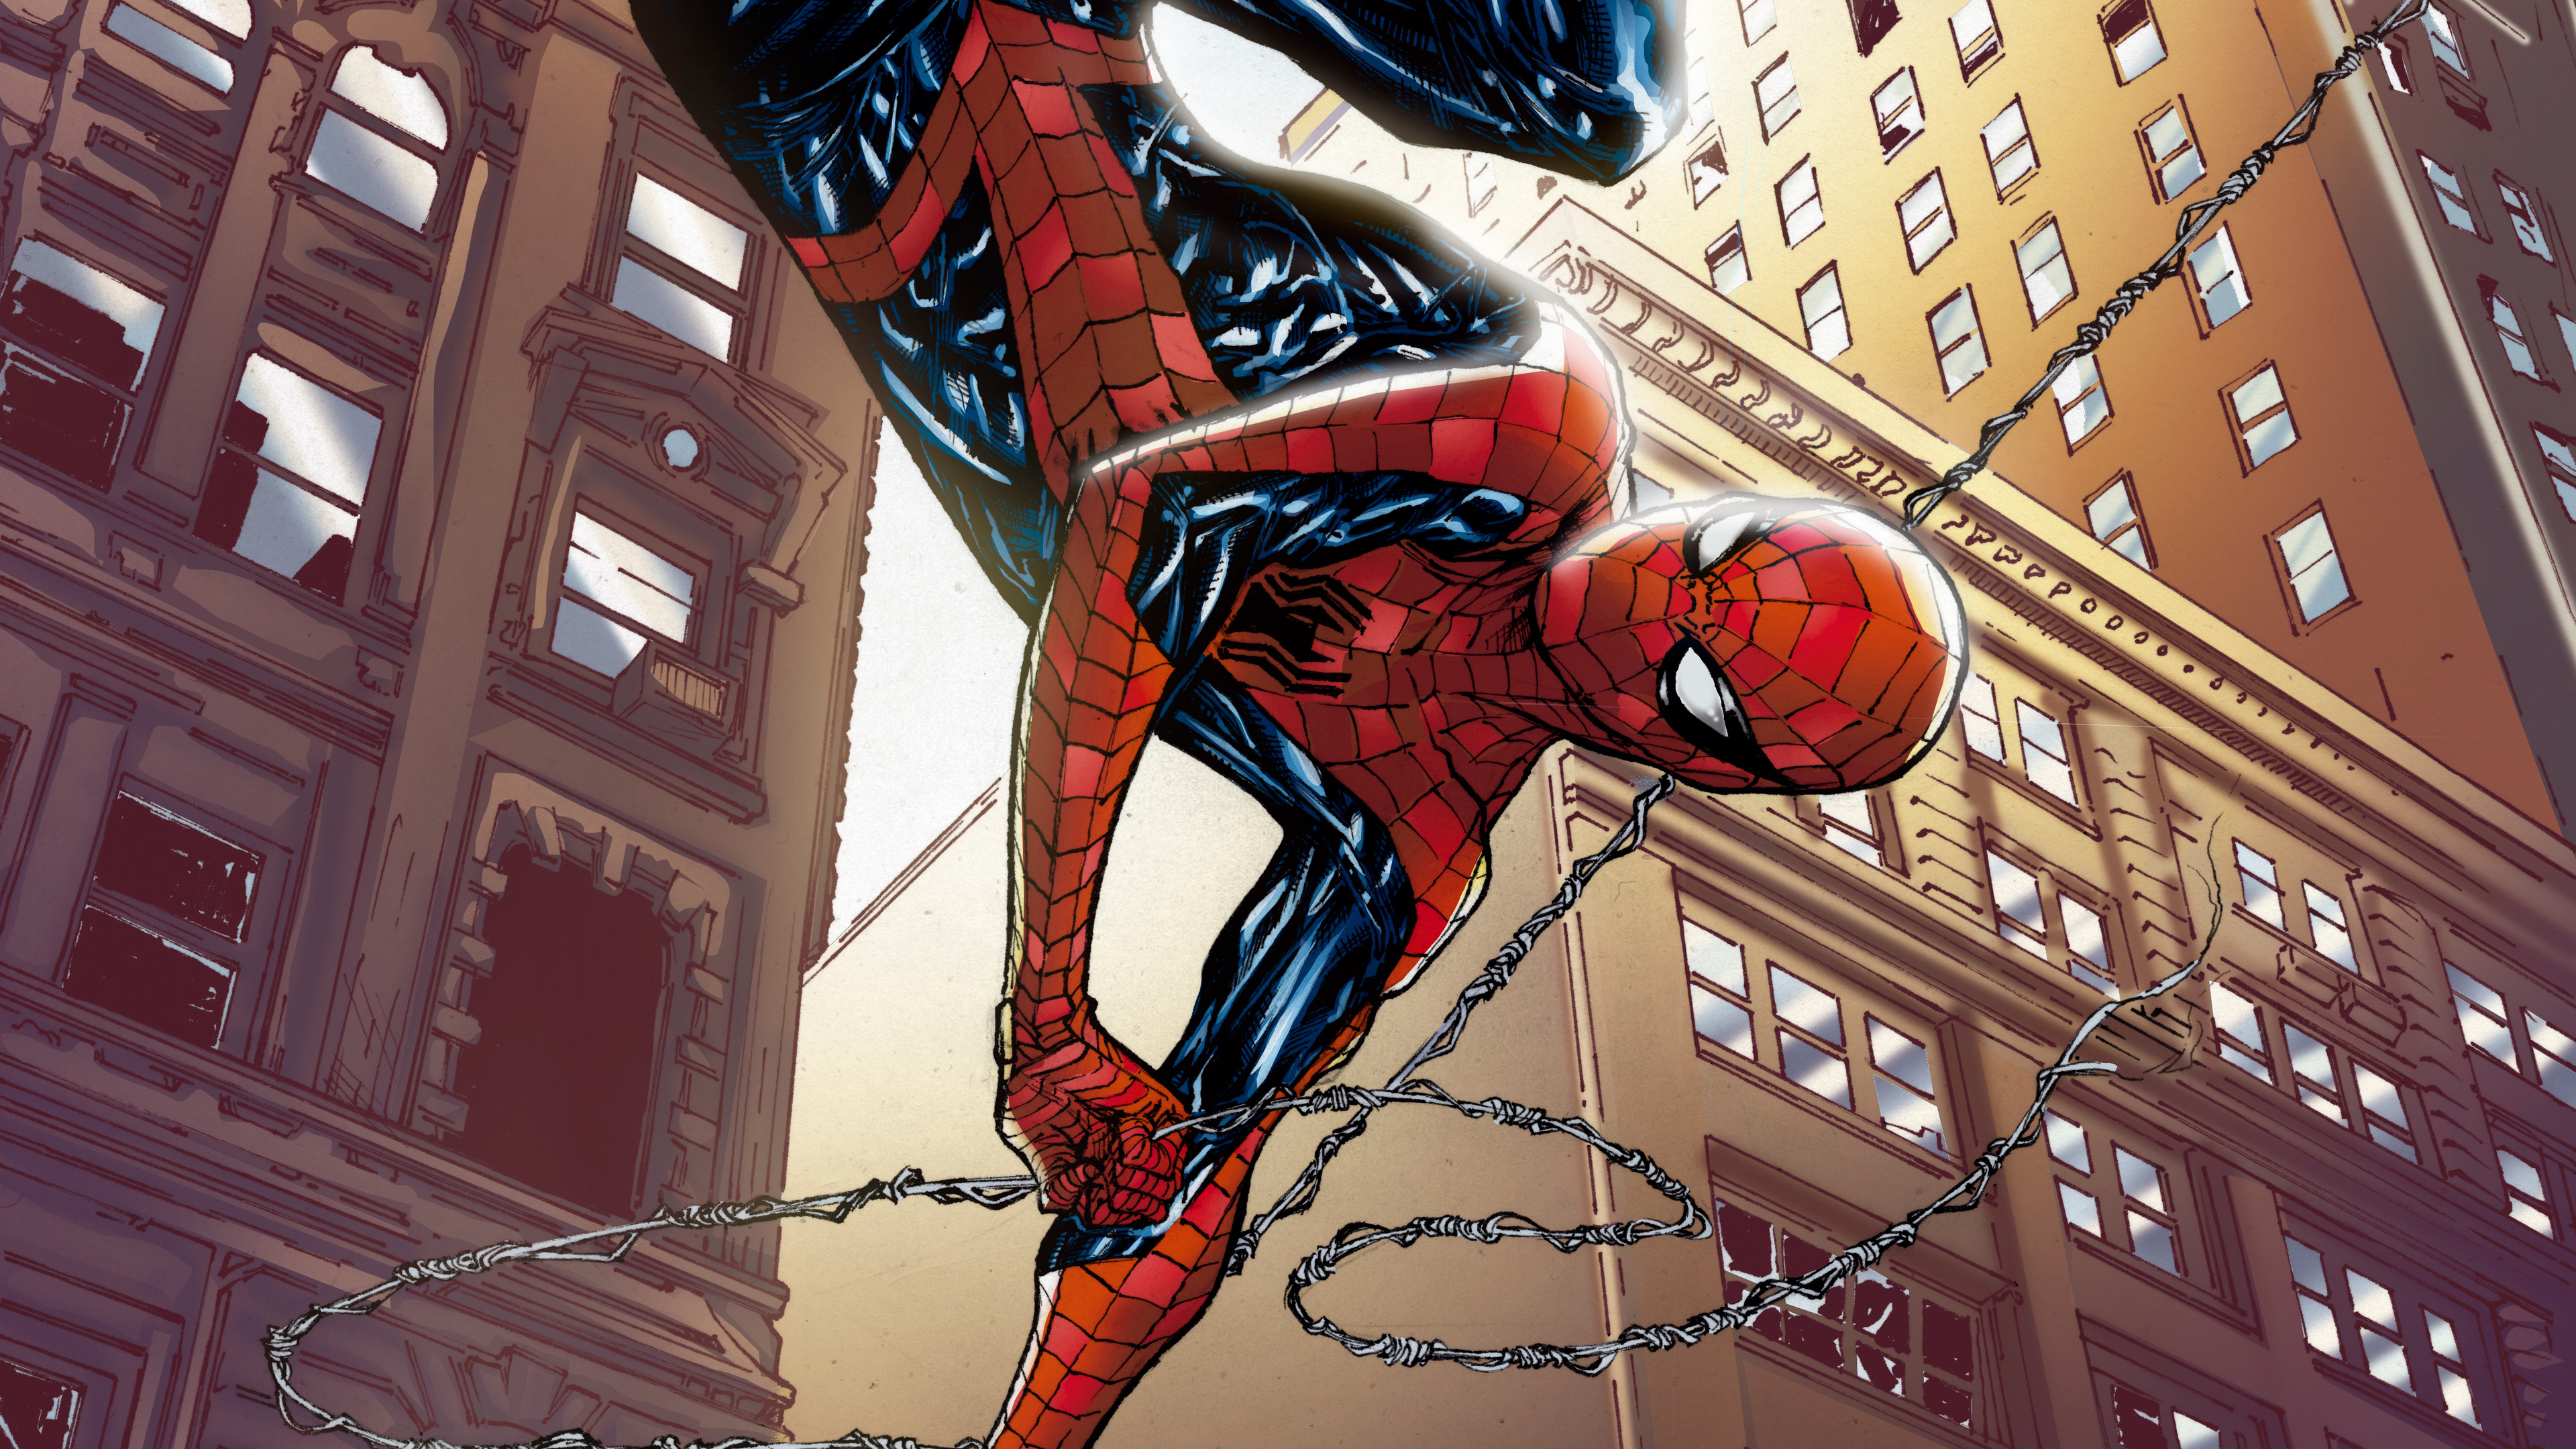 spiderman lets save the city 1568054367 - Spiderman Lets Save The City - superheroes wallpapers, spiderman wallpapers, hd-wallpapers, digital art wallpapers, deviantart wallpapers, artwork wallpapers, artist wallpapers, 5k wallpapers, 4k-wallpapers